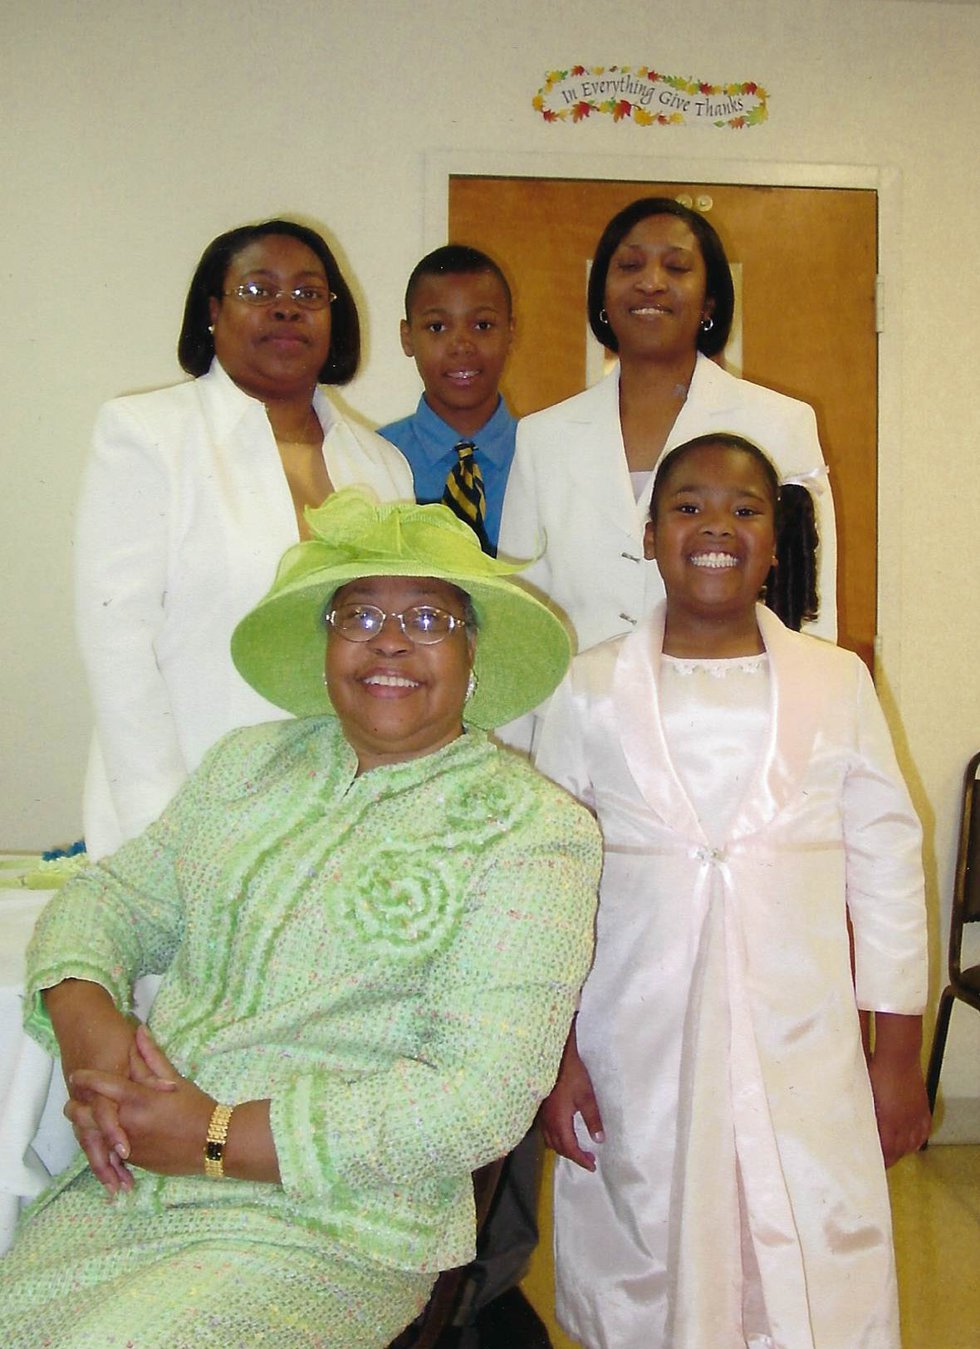 Christopher John Rogers grandmother at Greater Mount Gideon Baptist Church in Baton Rouge